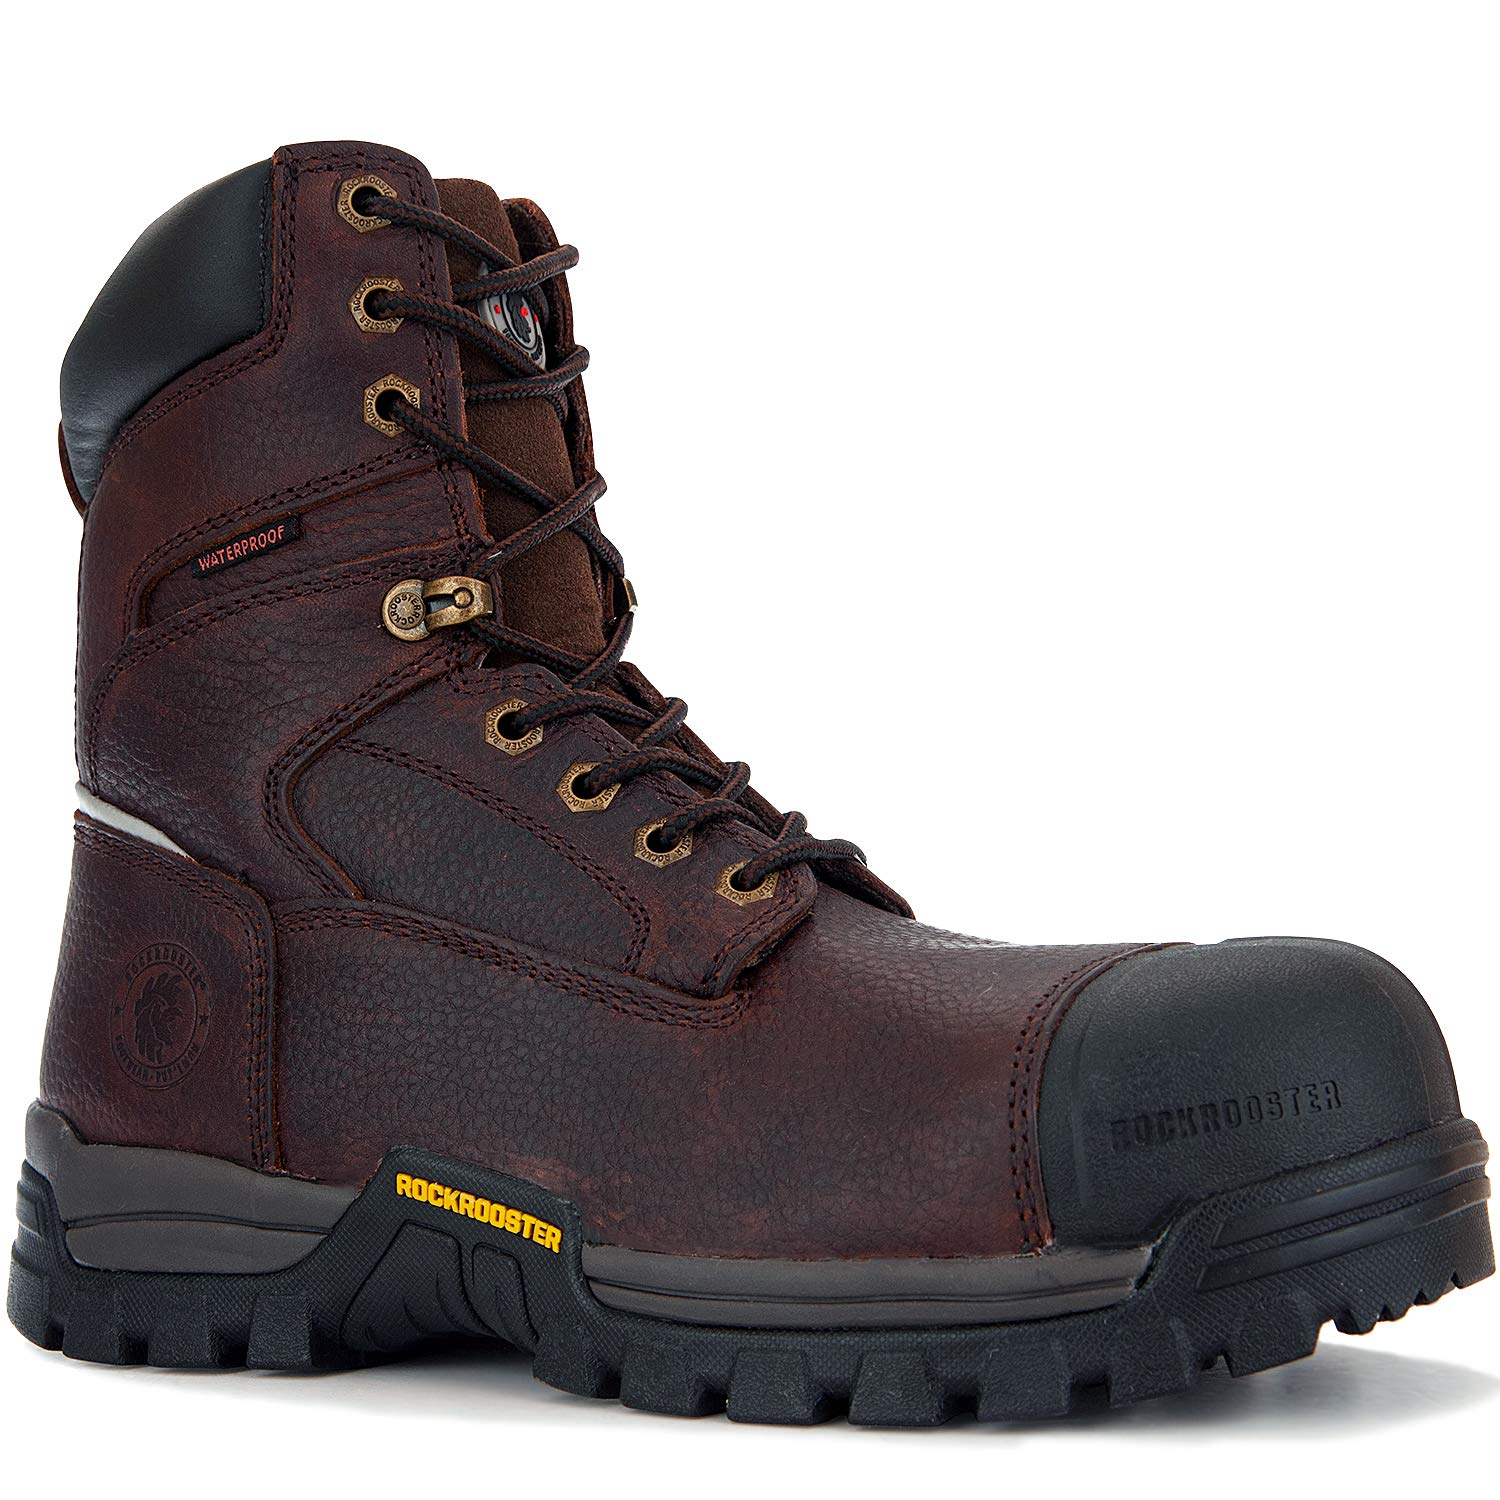 ROCKROOSTER Men's Work Boots,Composite Toe,8 Inch Waterproof,Slip Resistant Safety Oiled Leather Shoes,Breathable,Anti-Puncture,Quick Dry,Anti-Fatigue,AT871